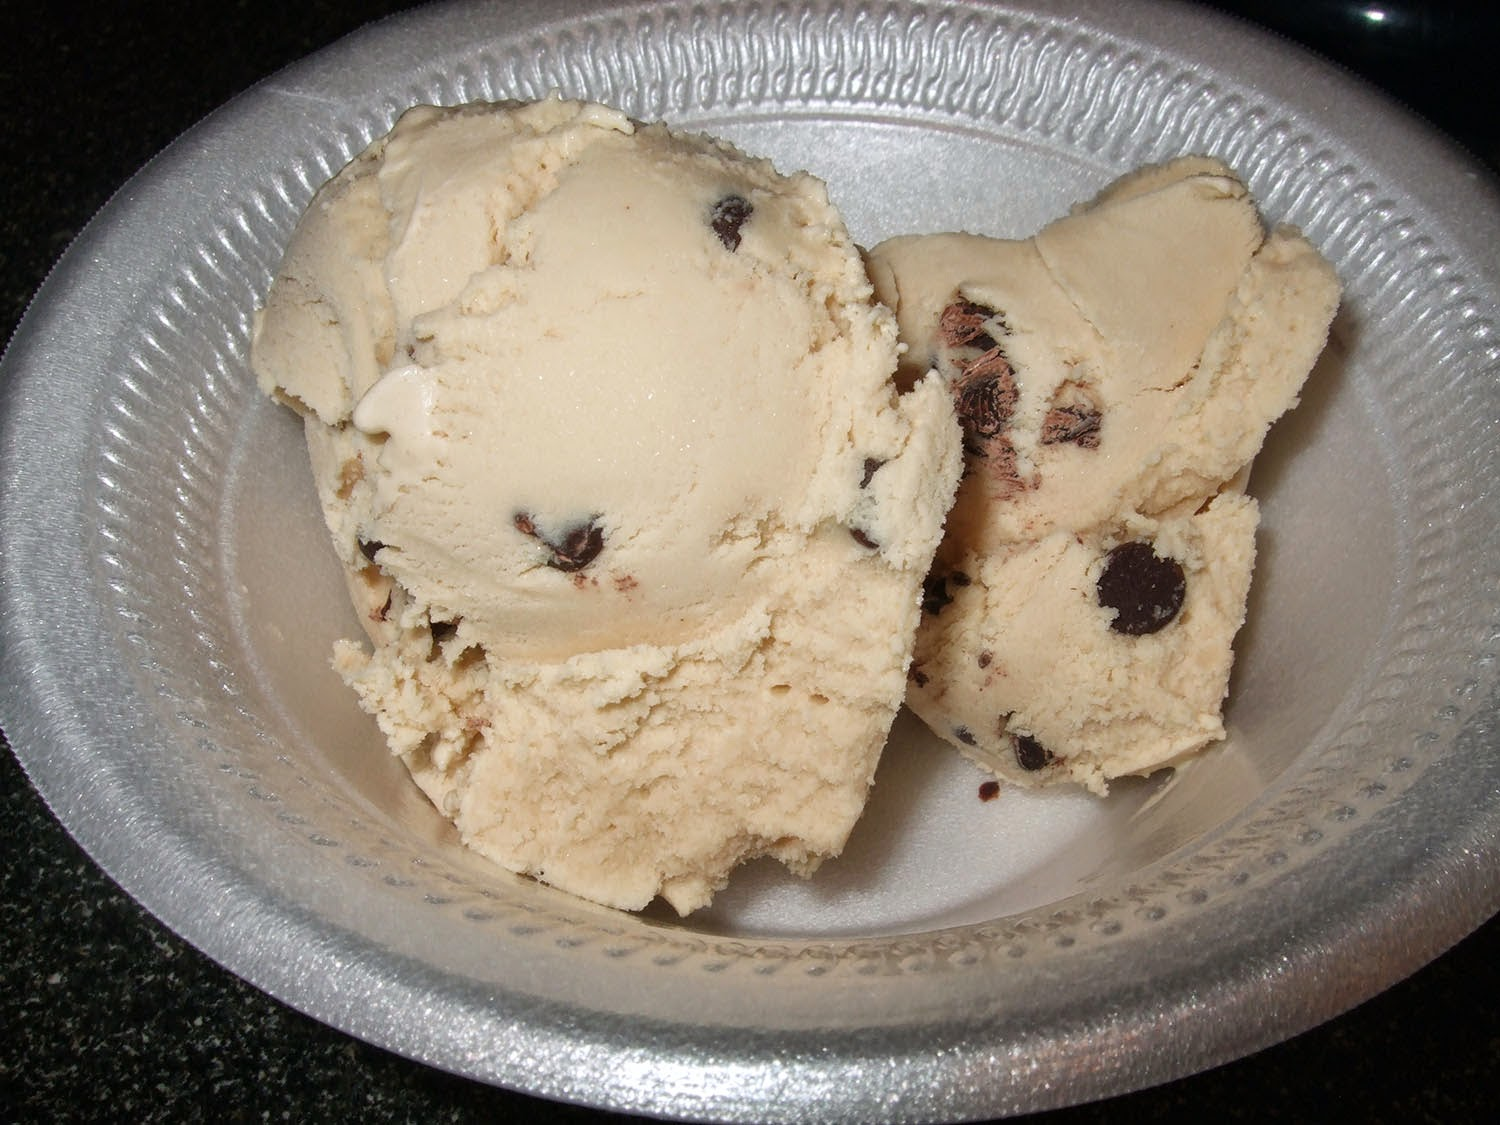 Scoop of ice cream with dark chocolate chips.